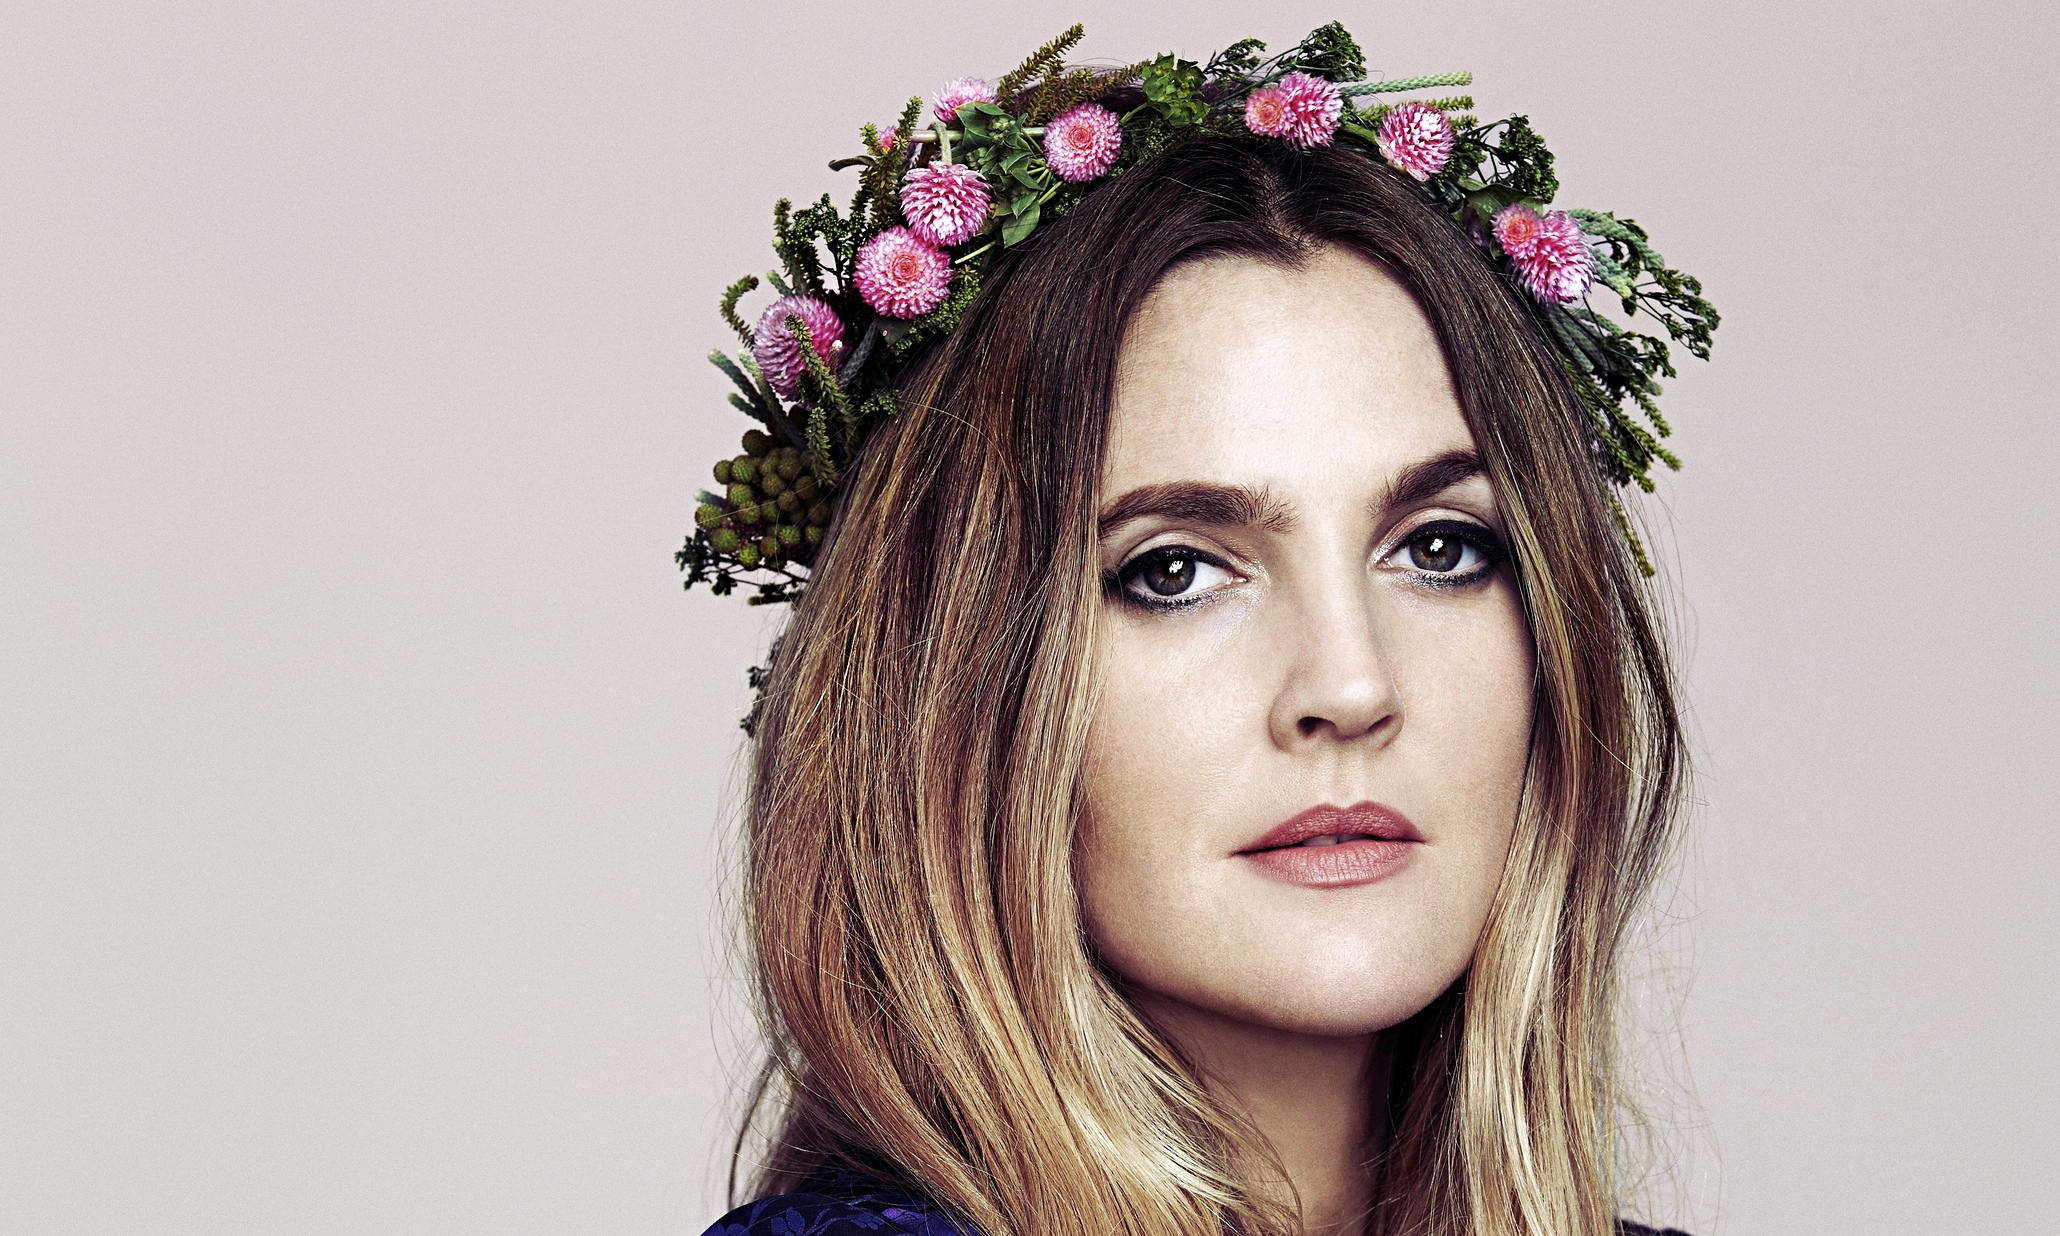 What I learned from Drew Barrymore